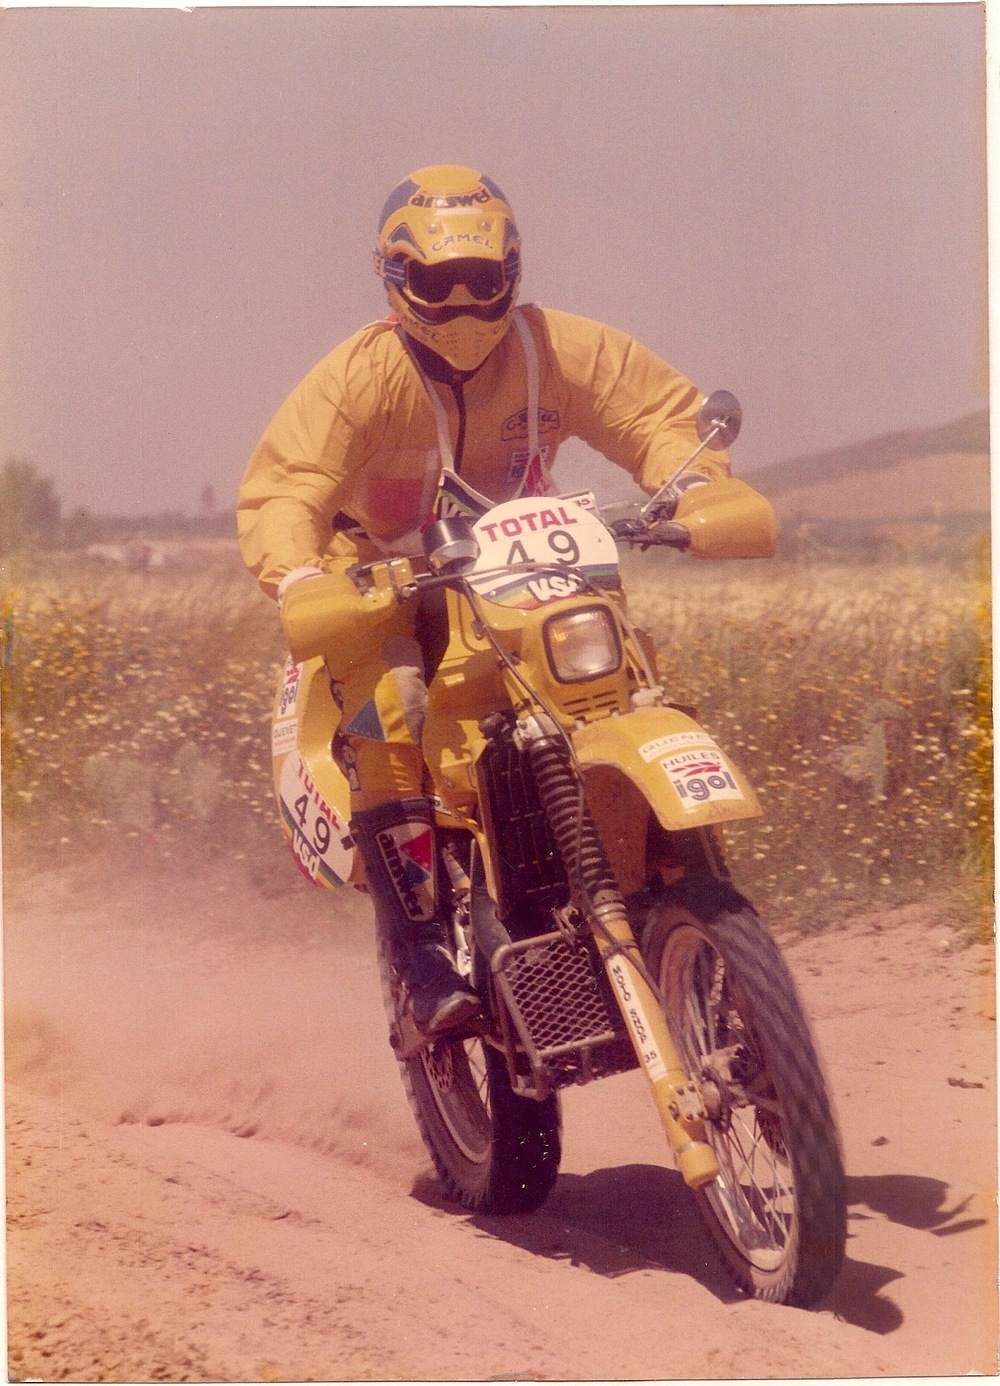 Christian Travert during the 1987 Atlas Rally in Morocco, a couple days before his engine seizure.